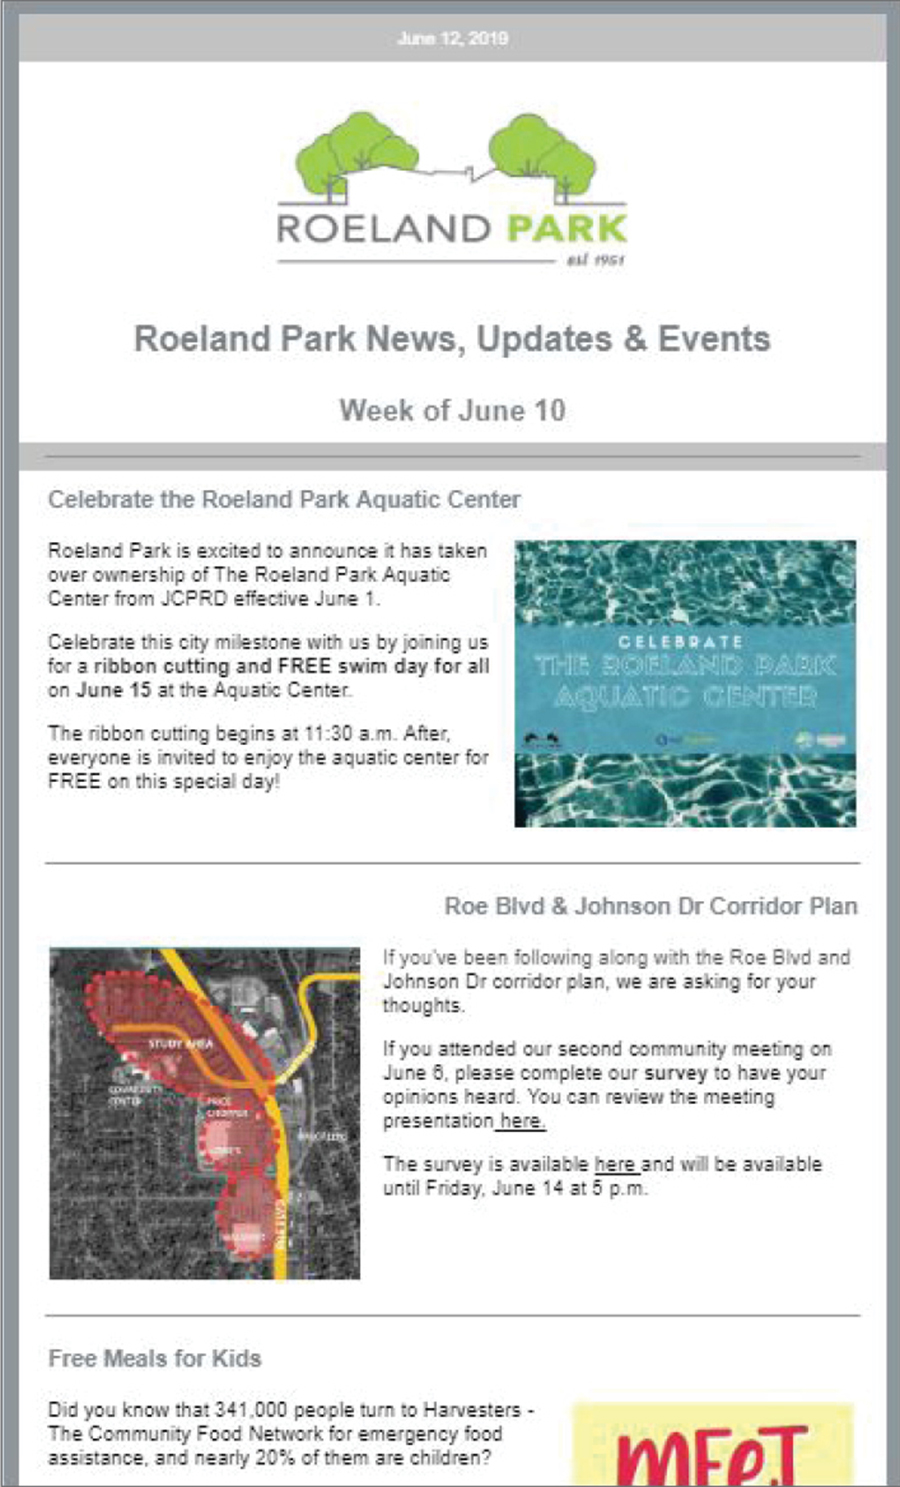 Sturges Word Client - Roeland Park EMAIL MARKETING